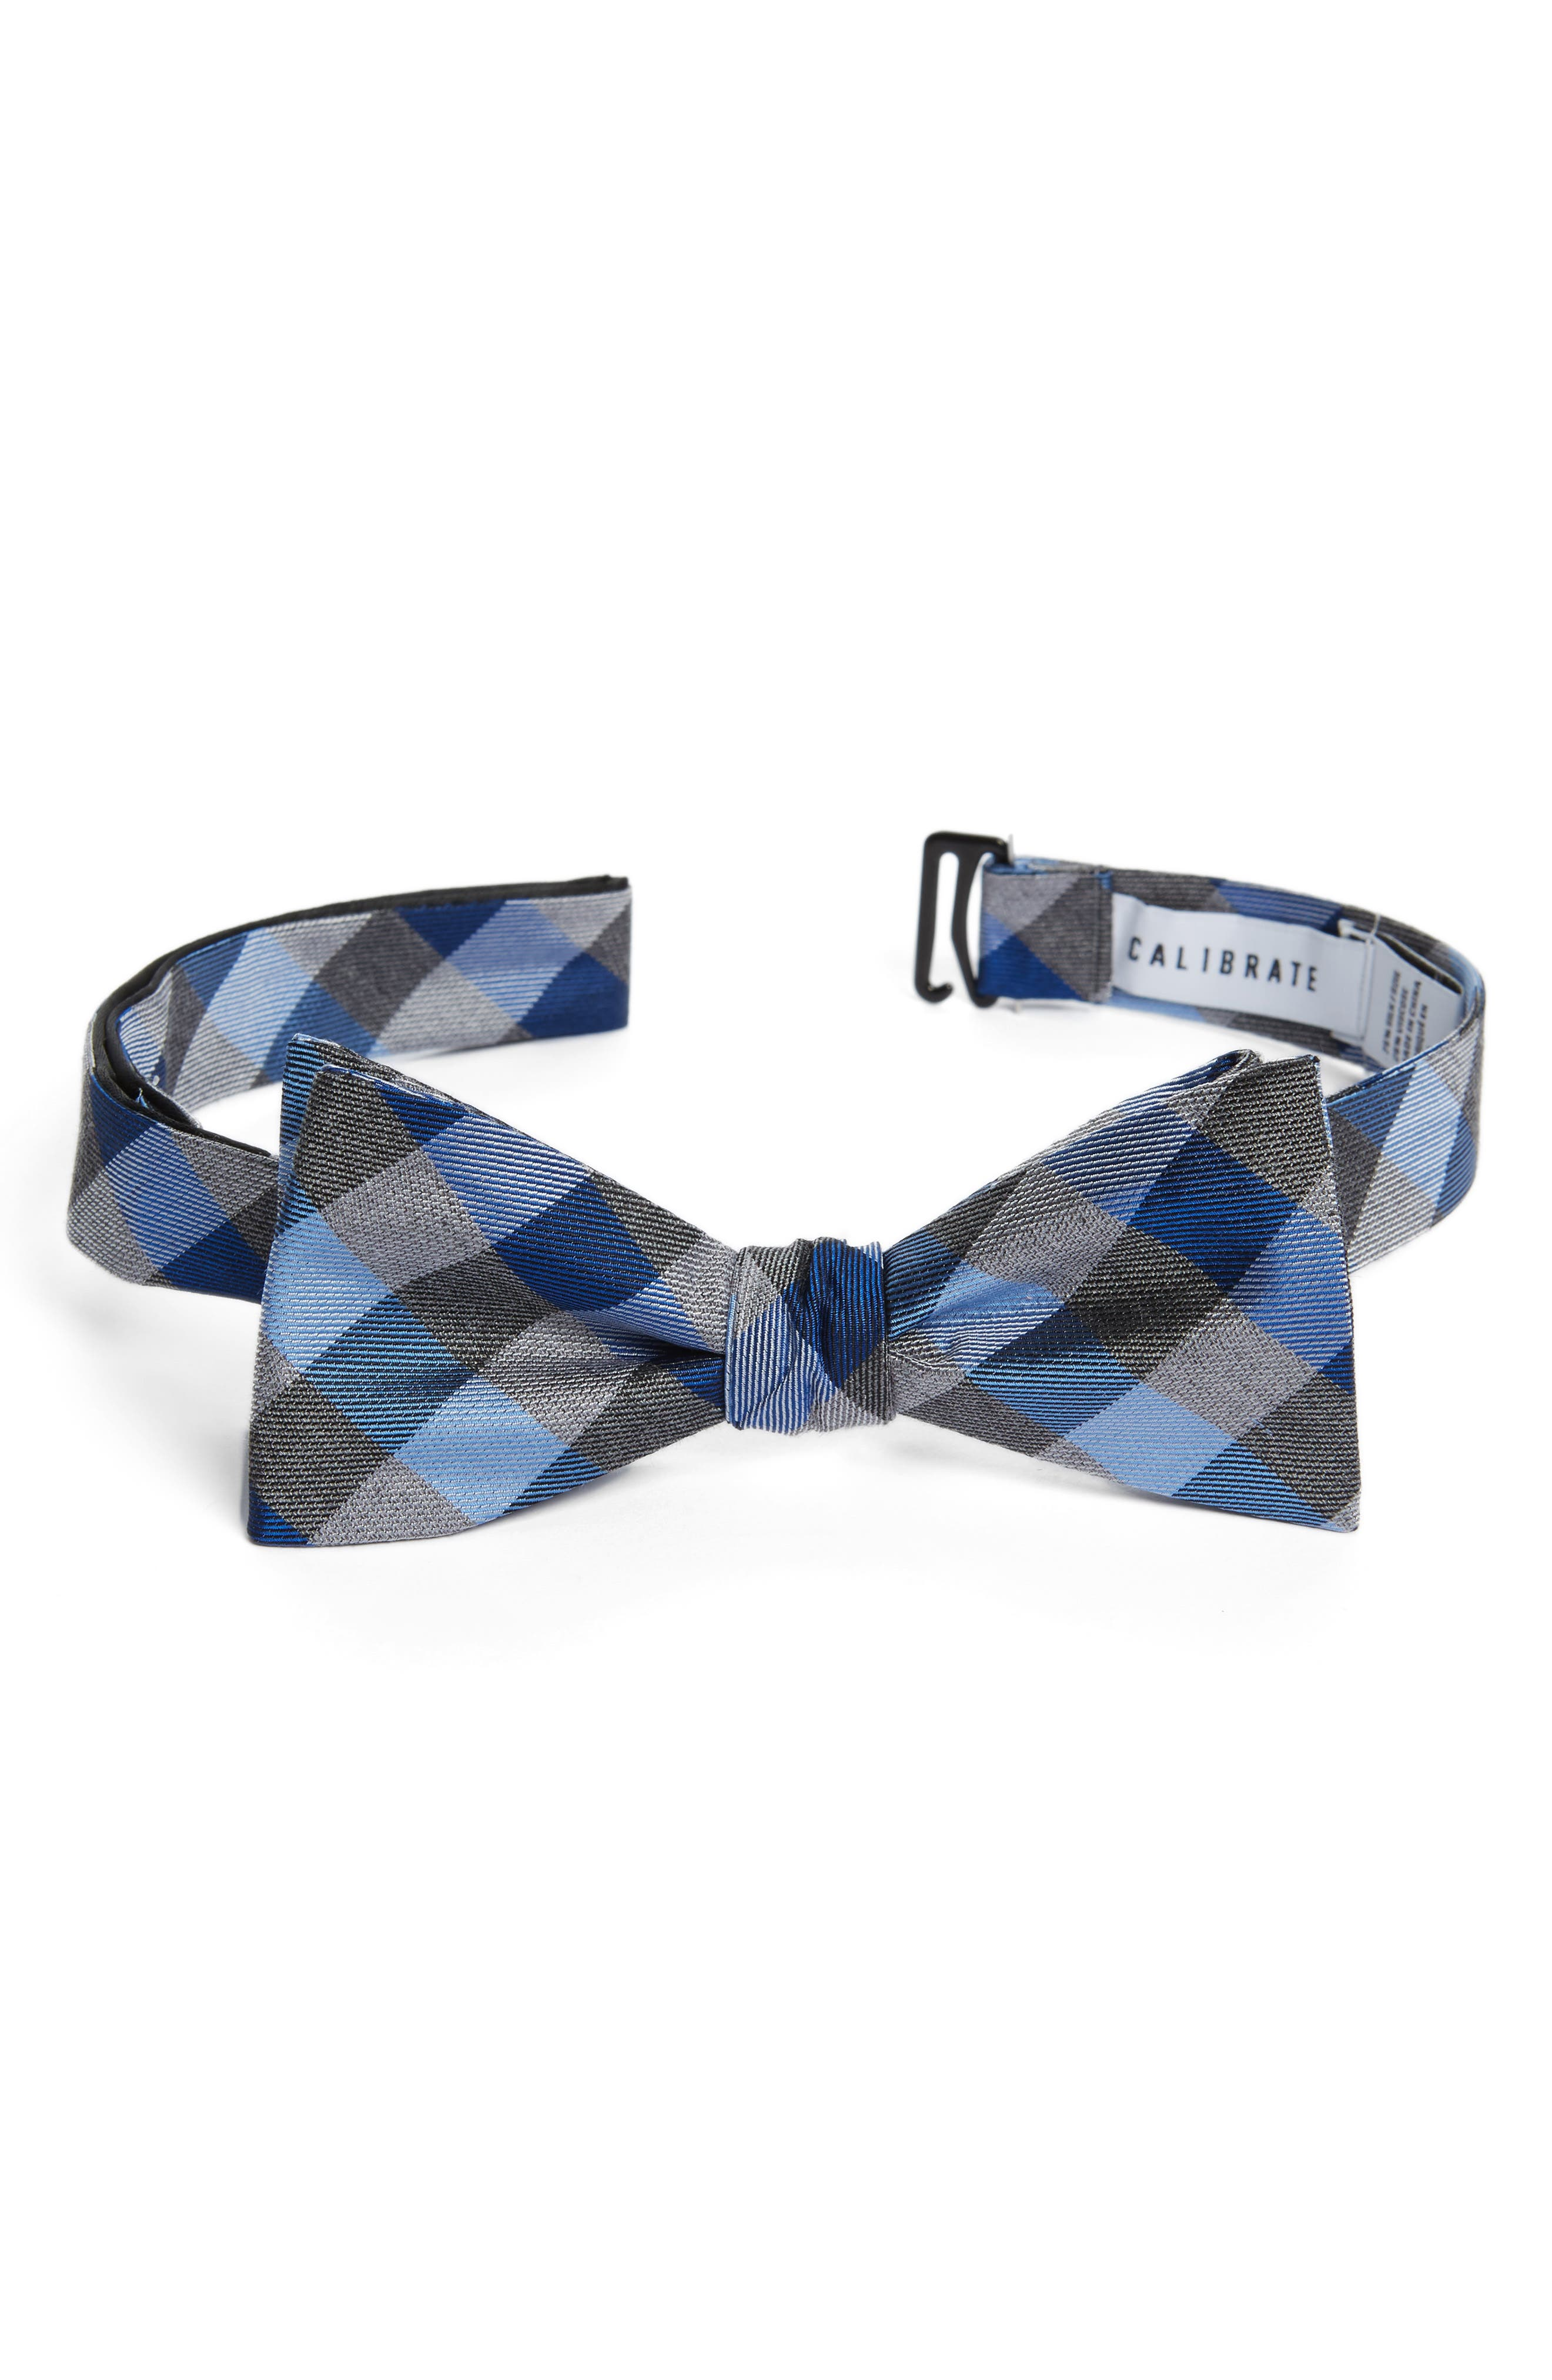 Alternate Image 1 Selected - Calibrate Gingham Silk Bow Tie